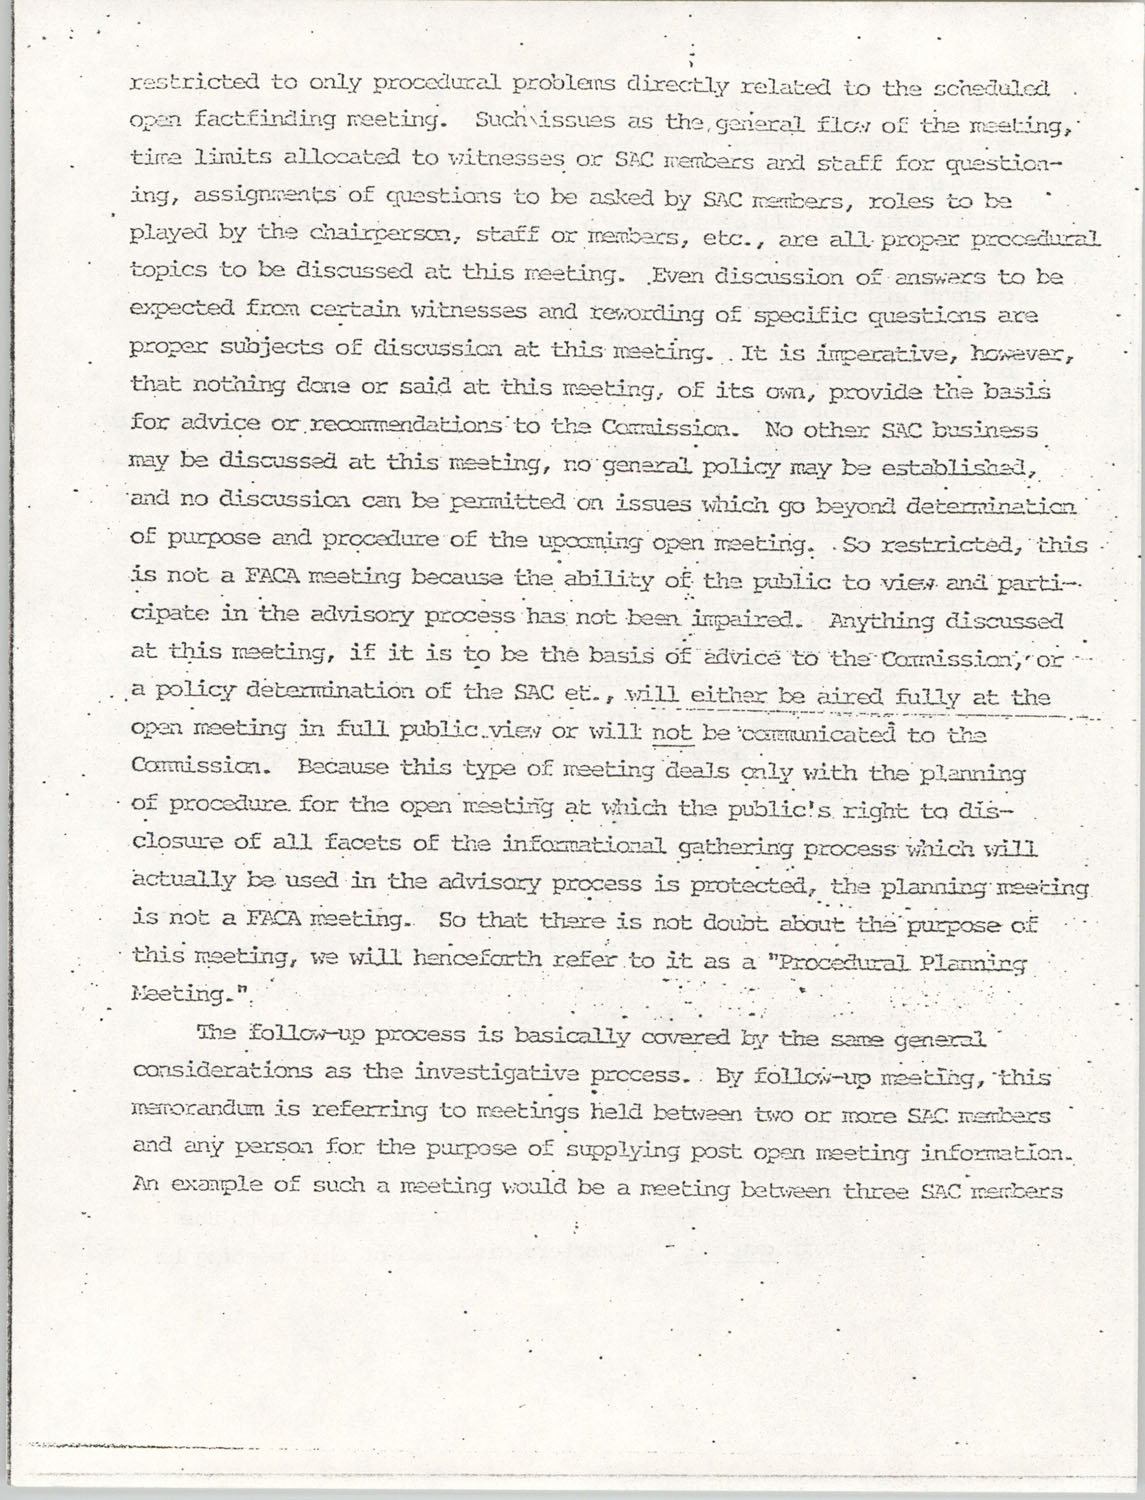 Memorandum from Lawrence B. Glick to Isaiah T. Creswell, August 7, 1975, Page 6